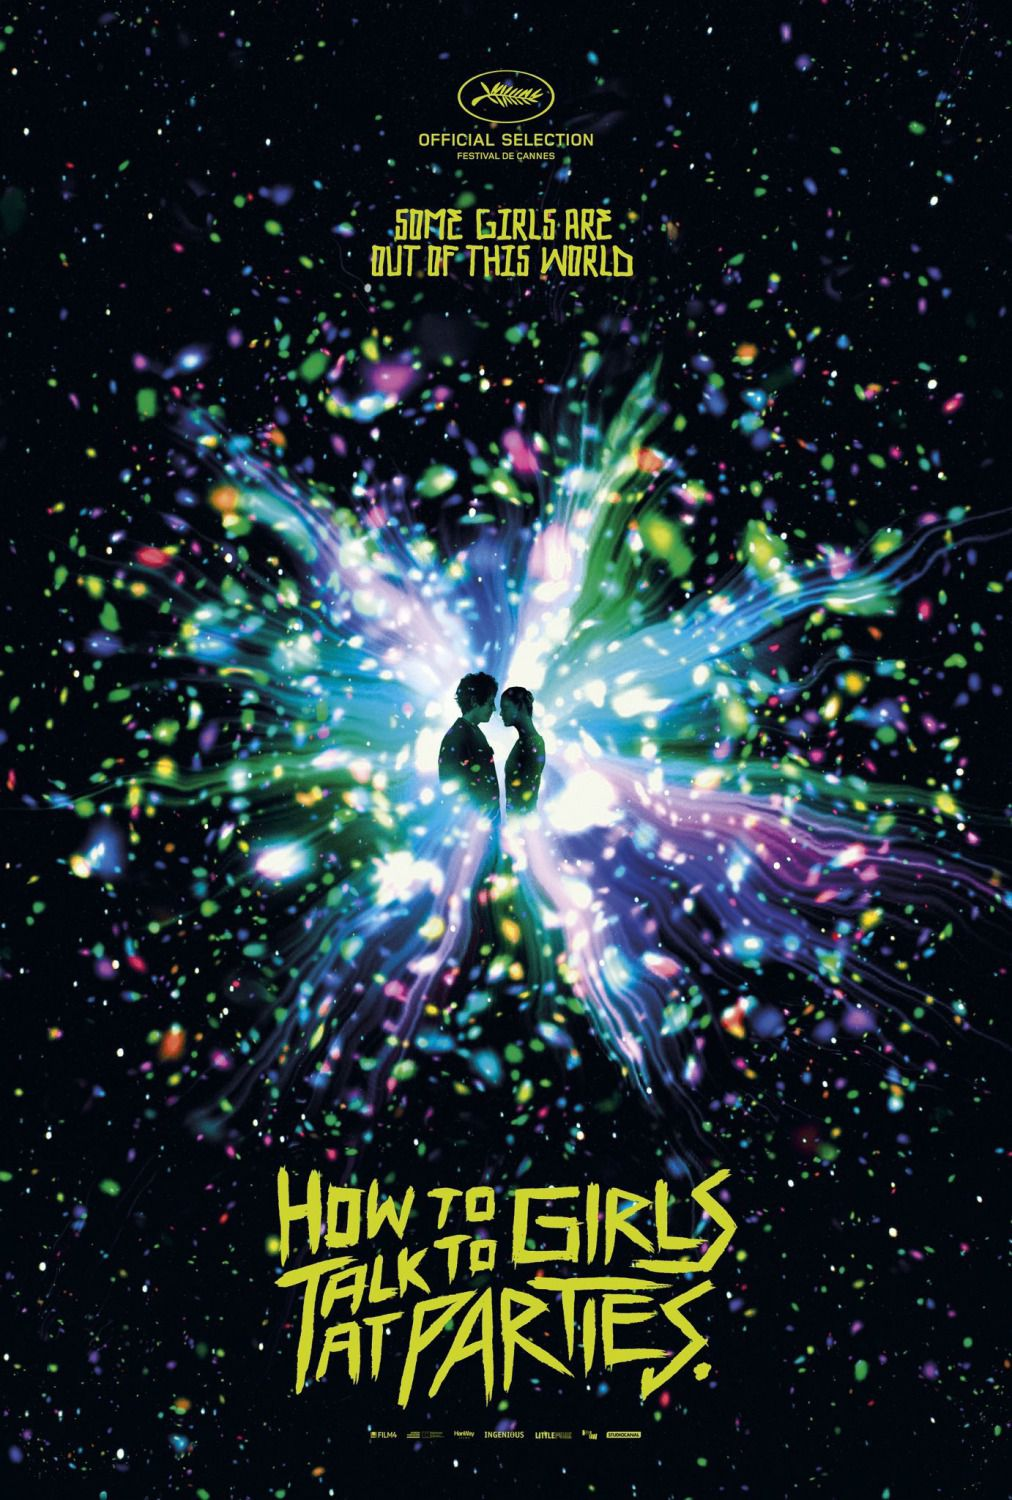 How to Talk to Girls at Parties - Come parlare alle Ragazze alle Feste - film poster